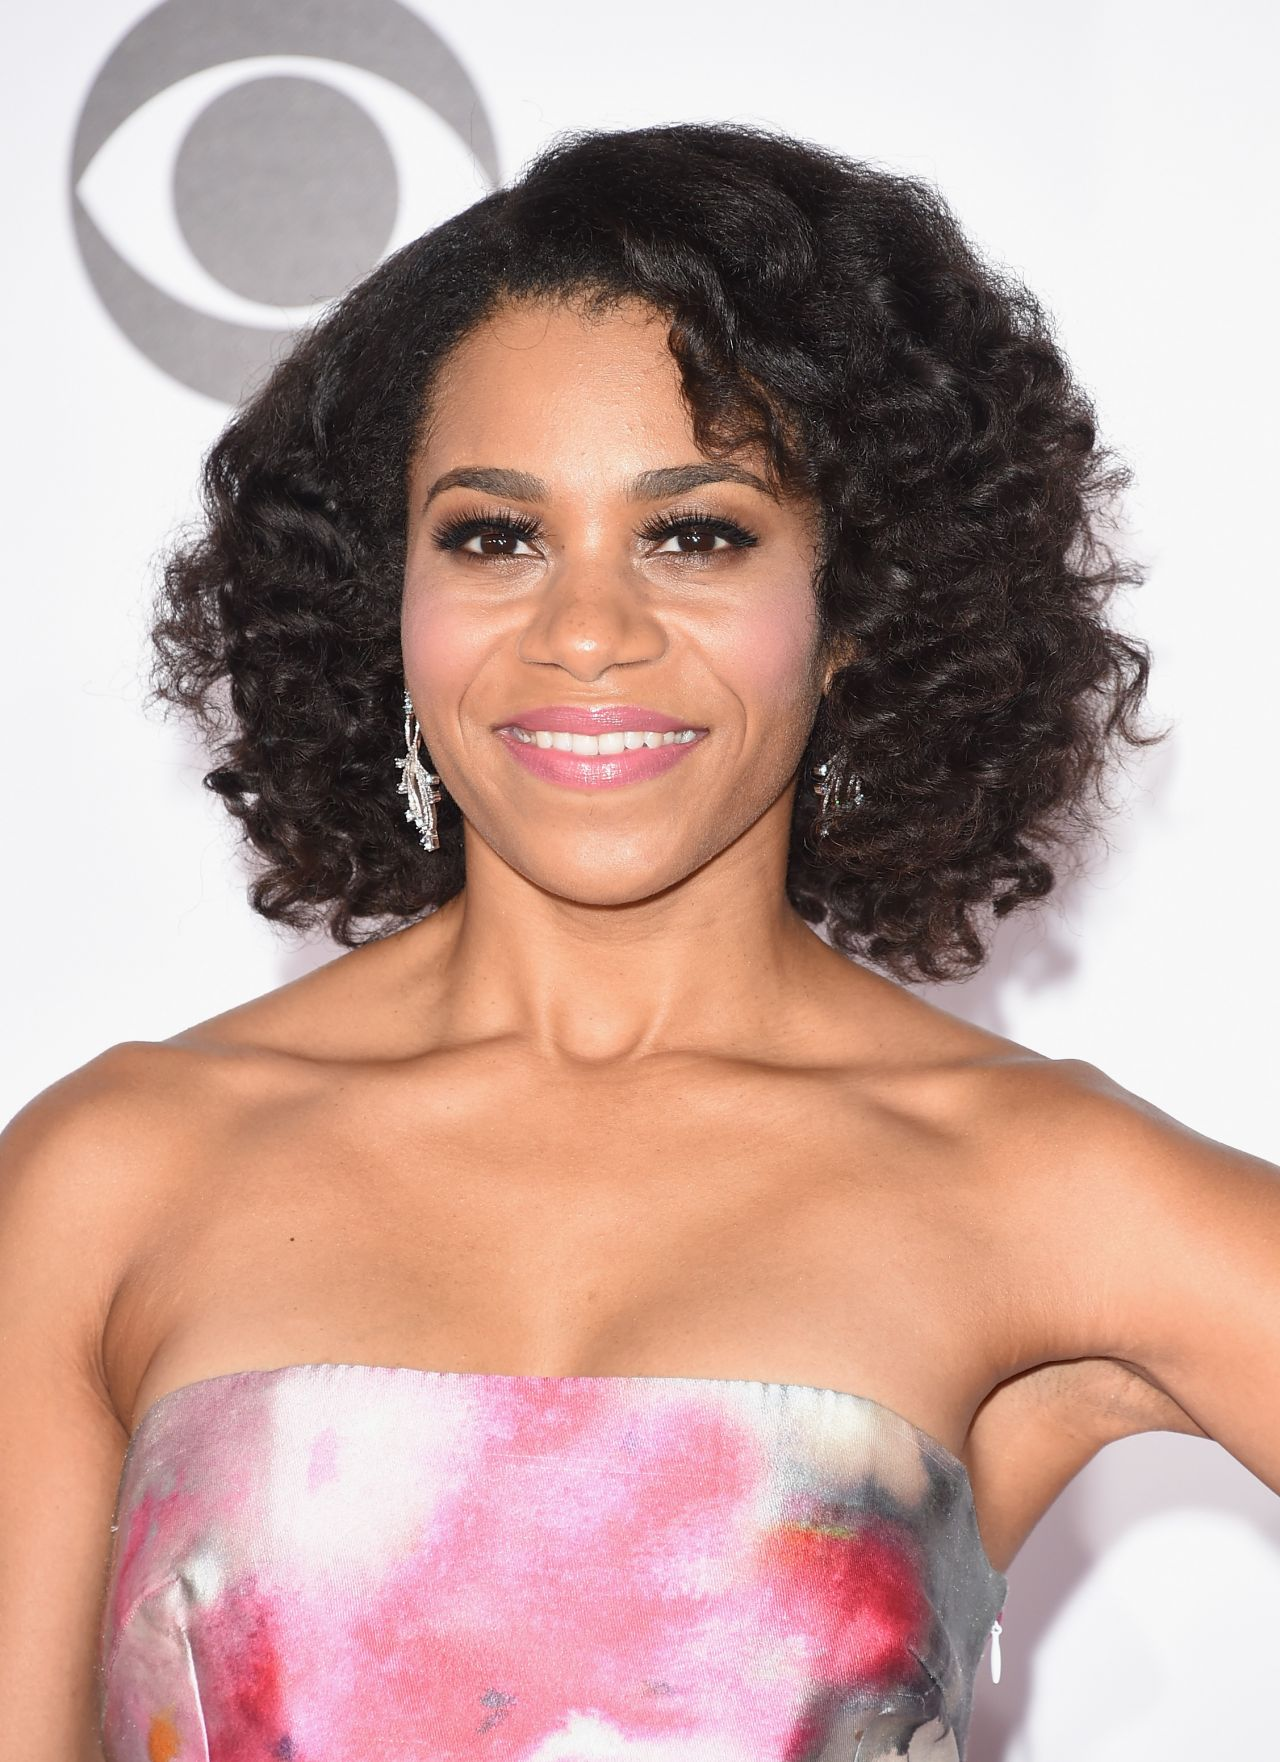 kelly mccreary movies and tv shows